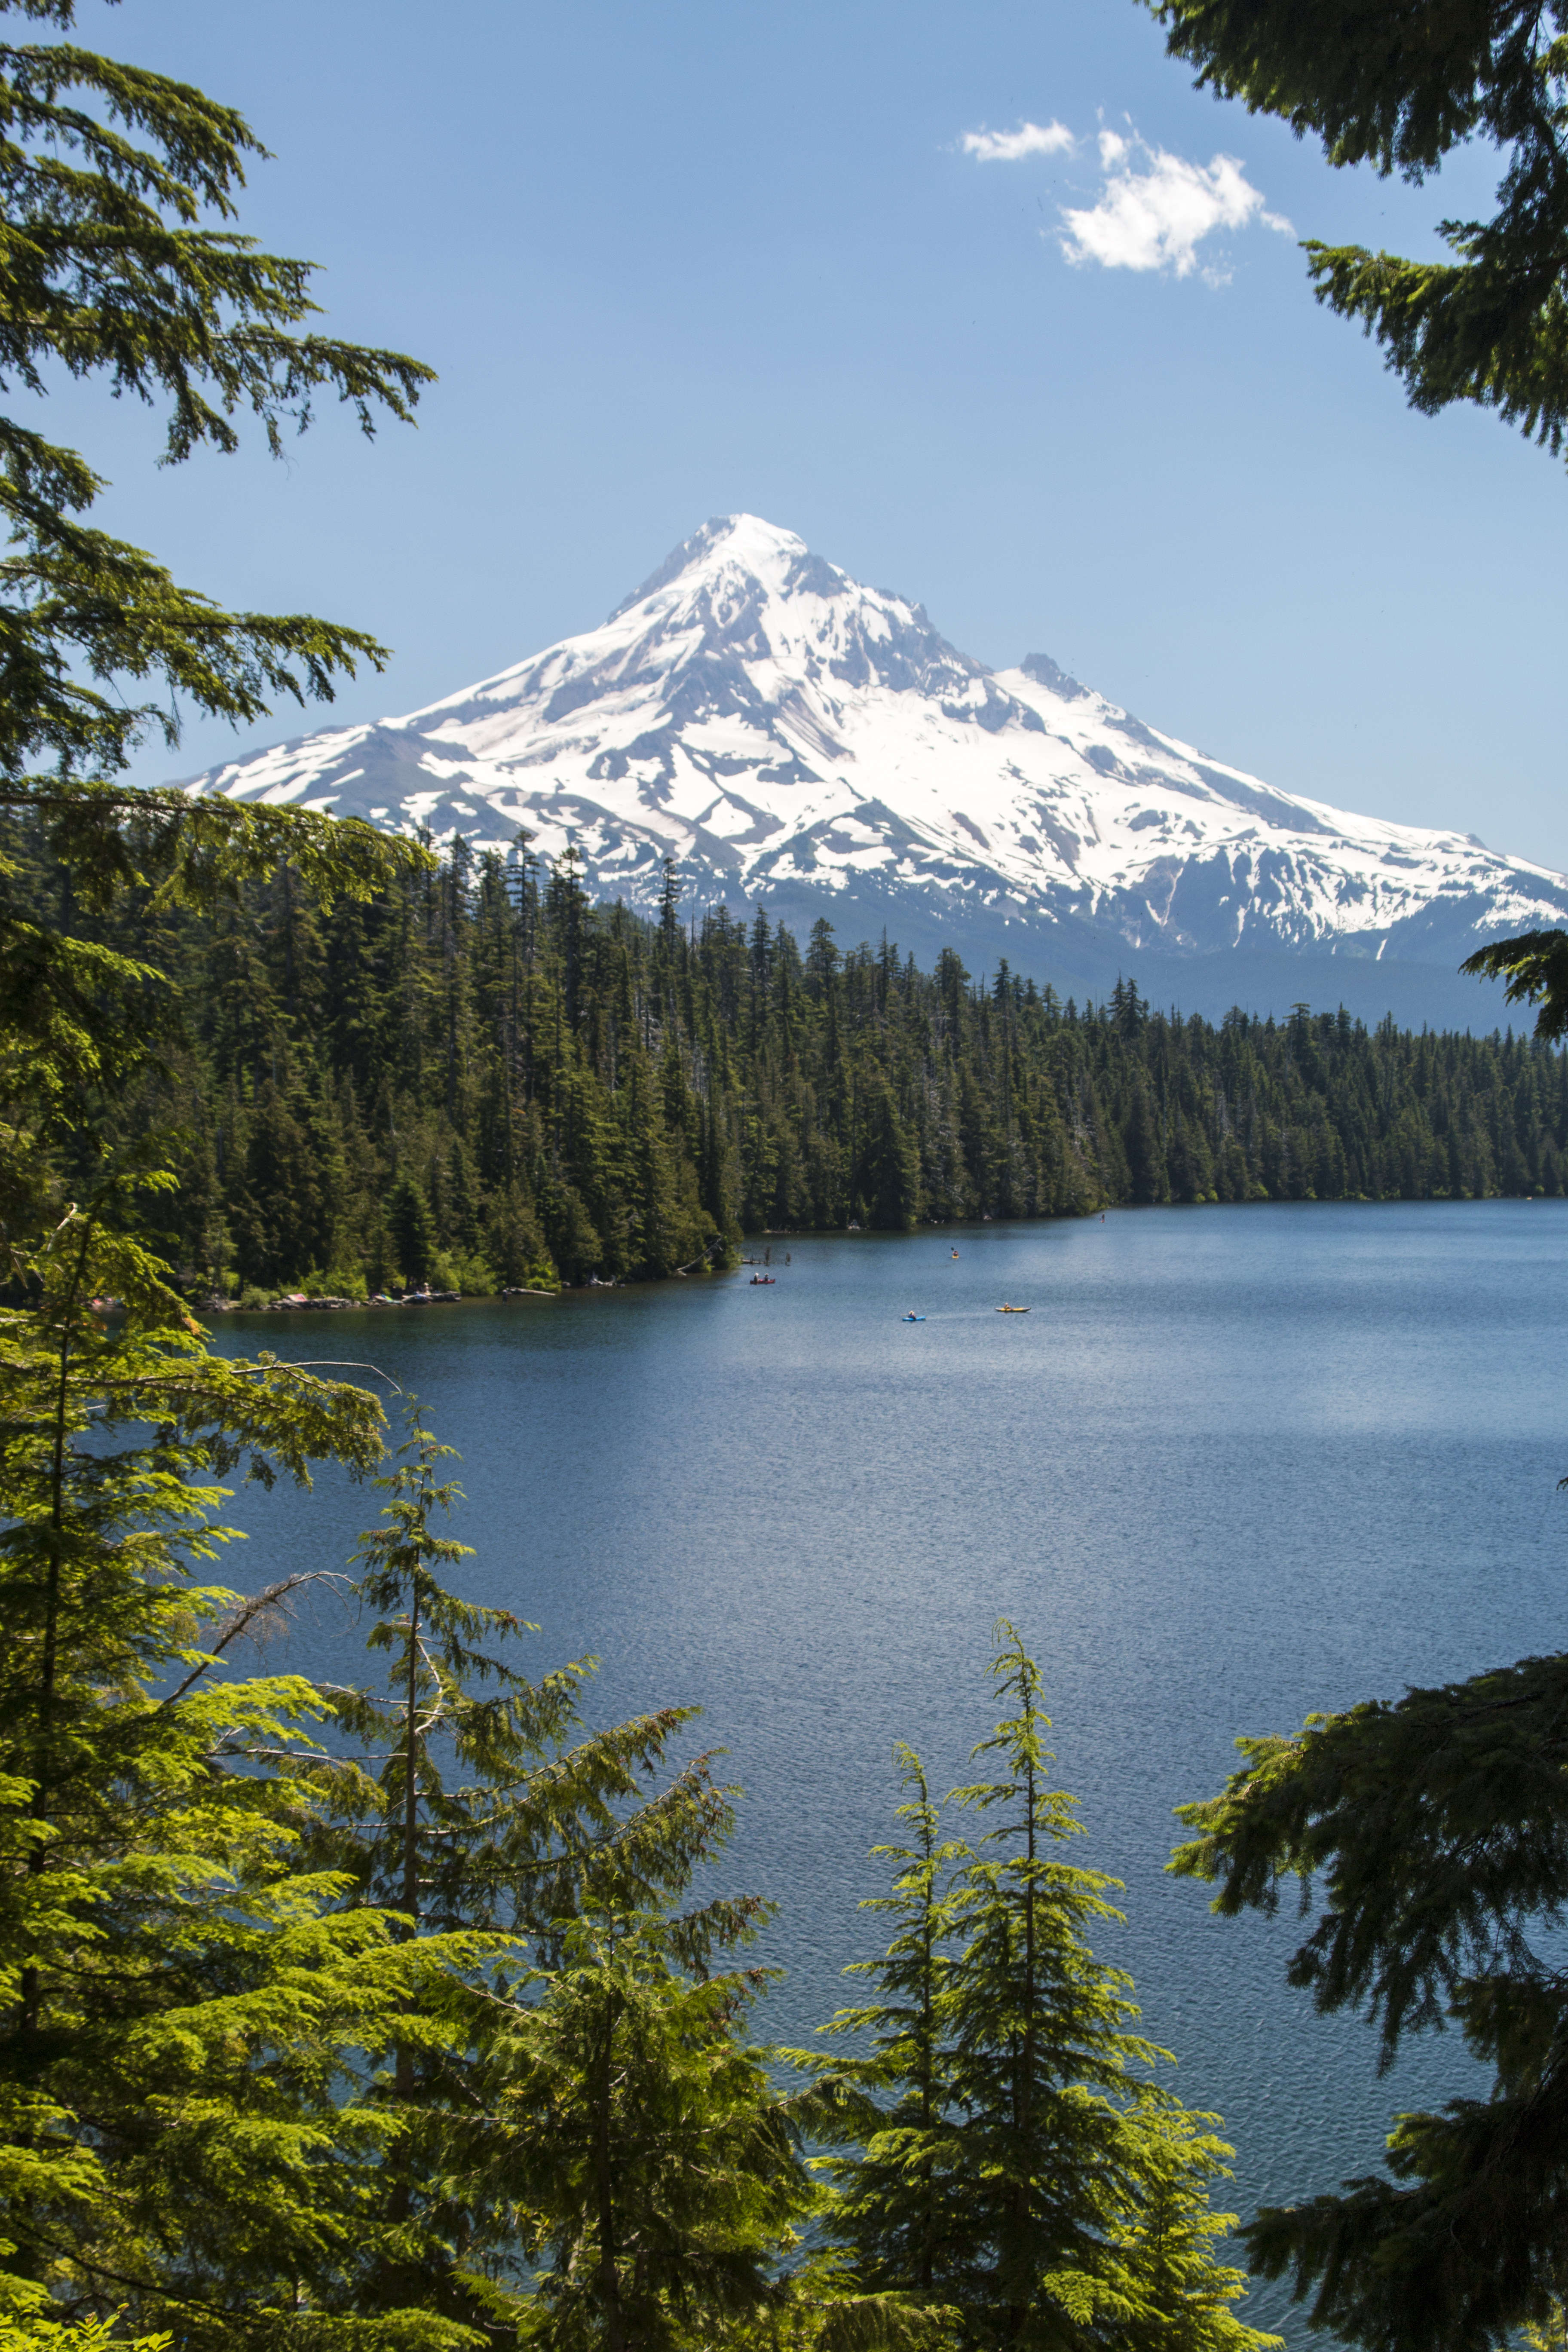 Lost Lake, Hood River County, Oregon, Mt. Hood in the Background, Forest, Lake, Landscape, Lost Lake, HQ Photo